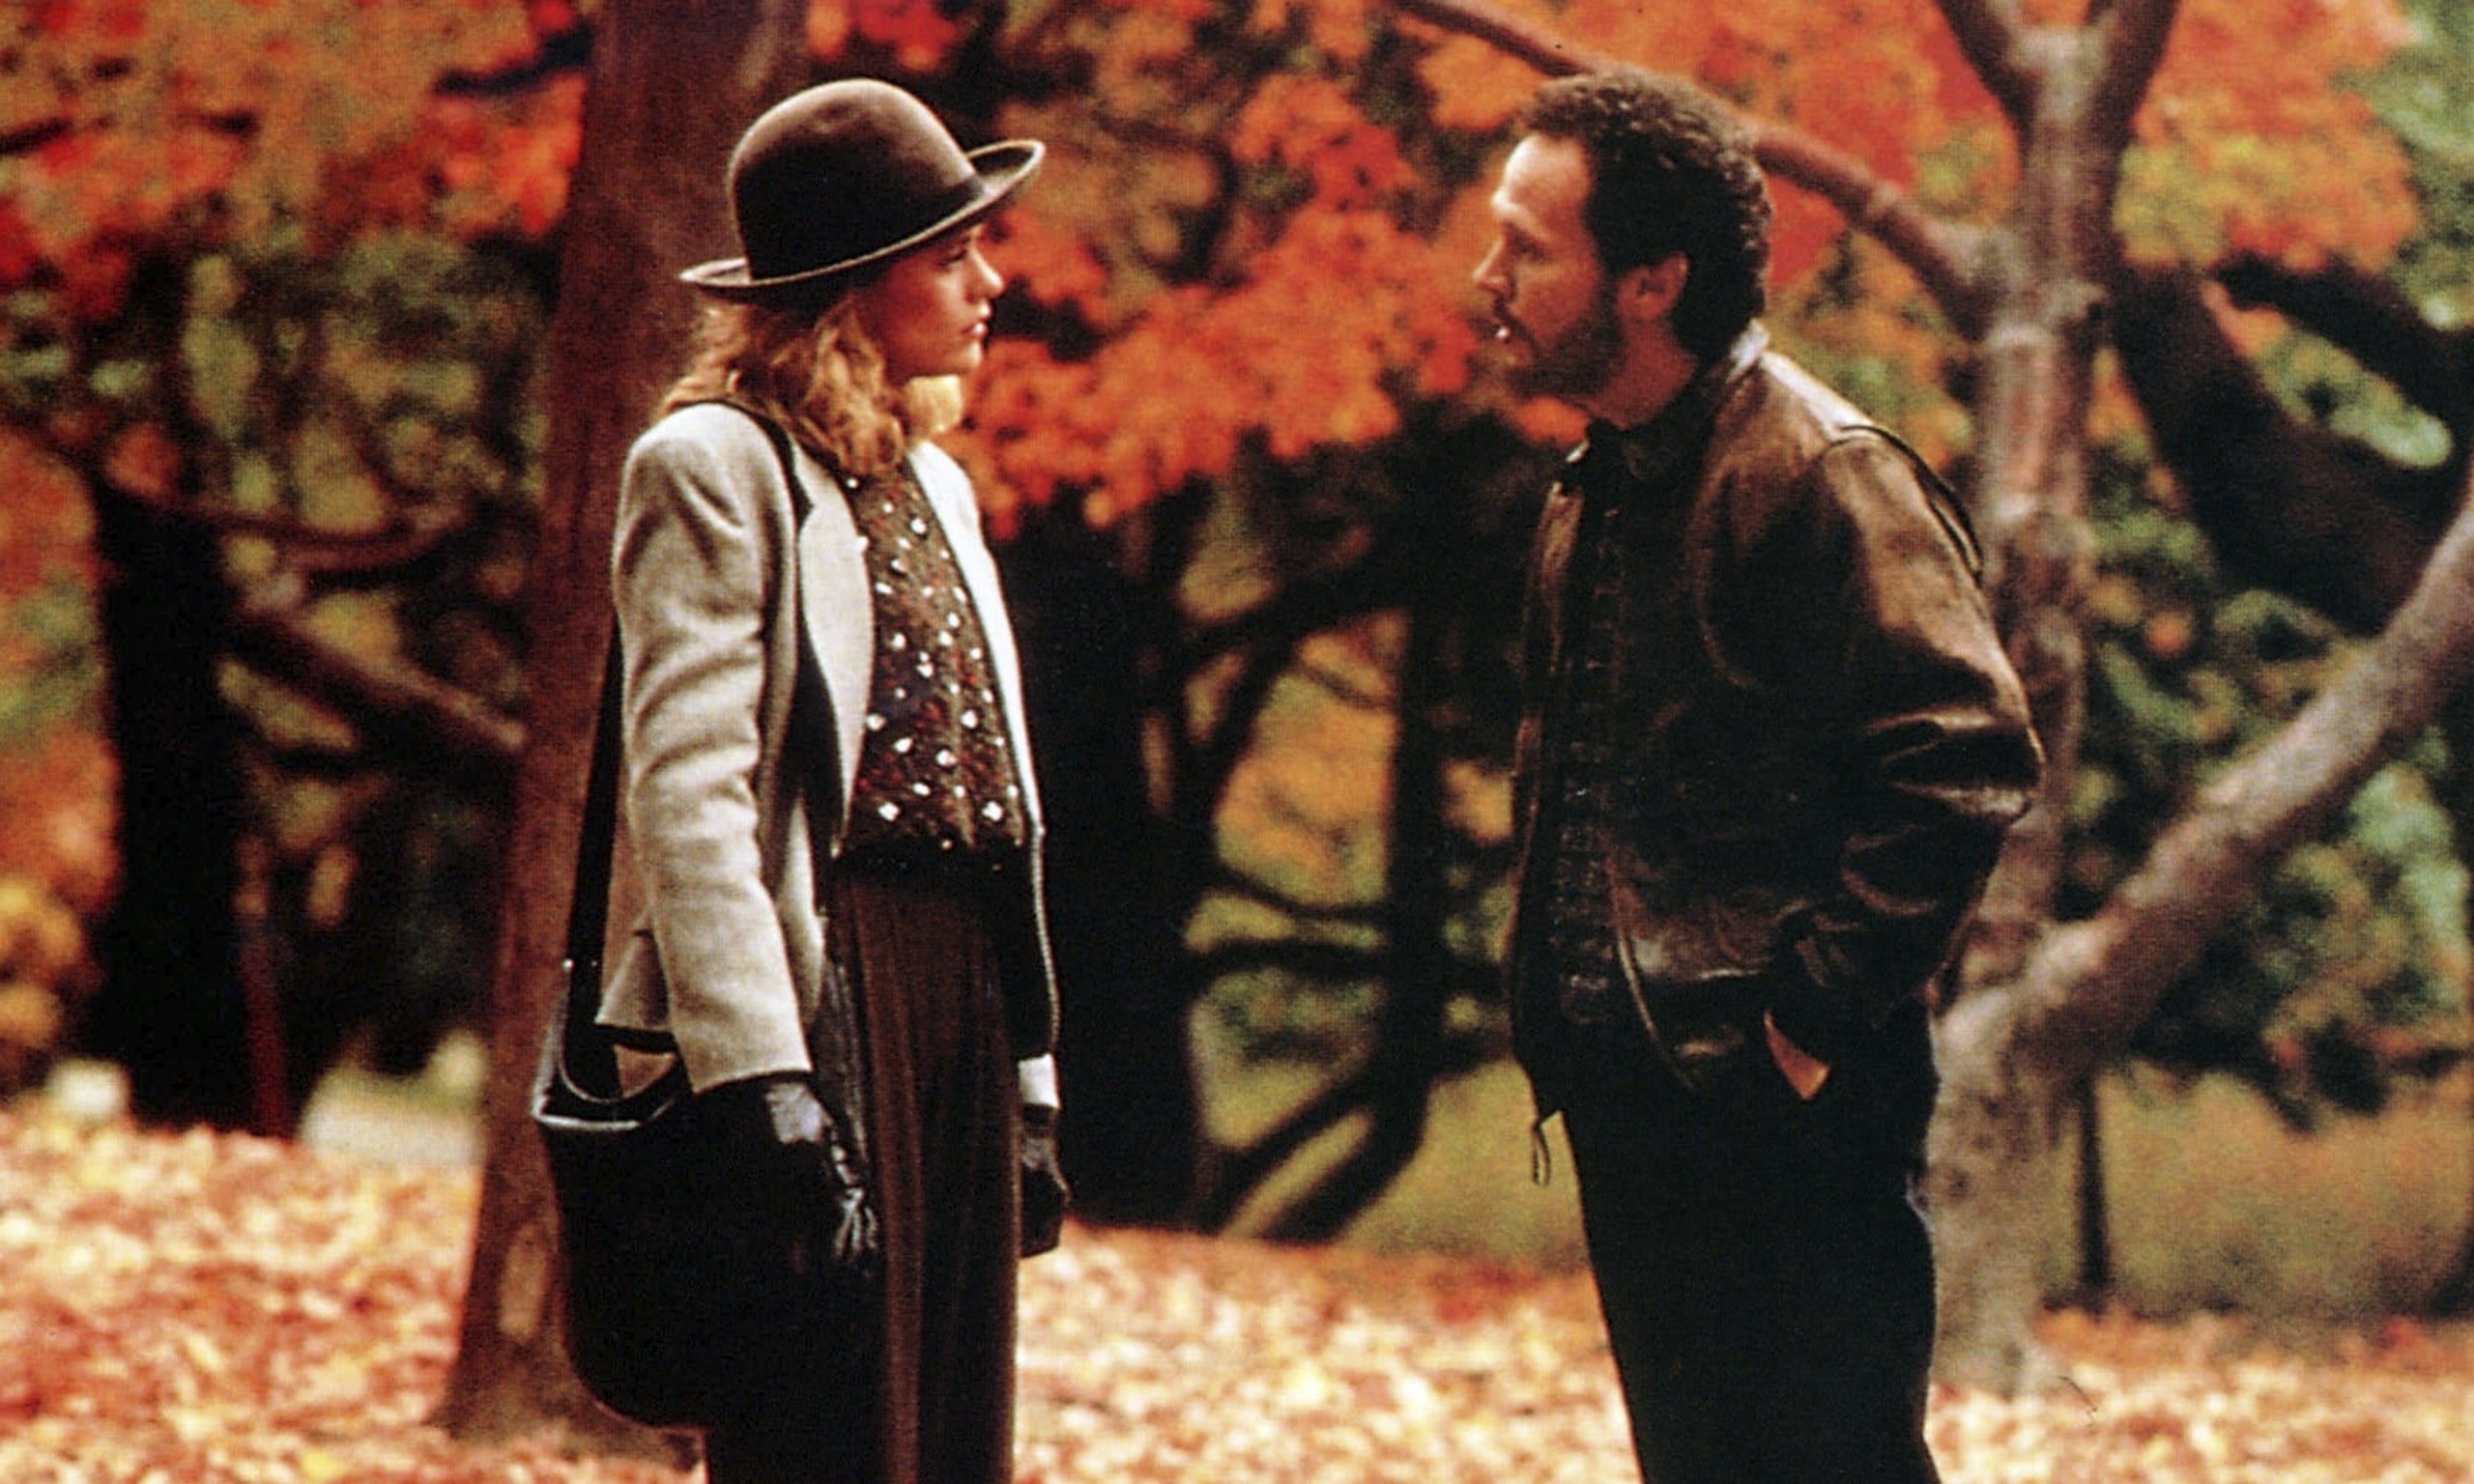 promesse nuziali da film, harry ti presento sally, via col vento, if only, a beautiful mind, se scappi ti sposo